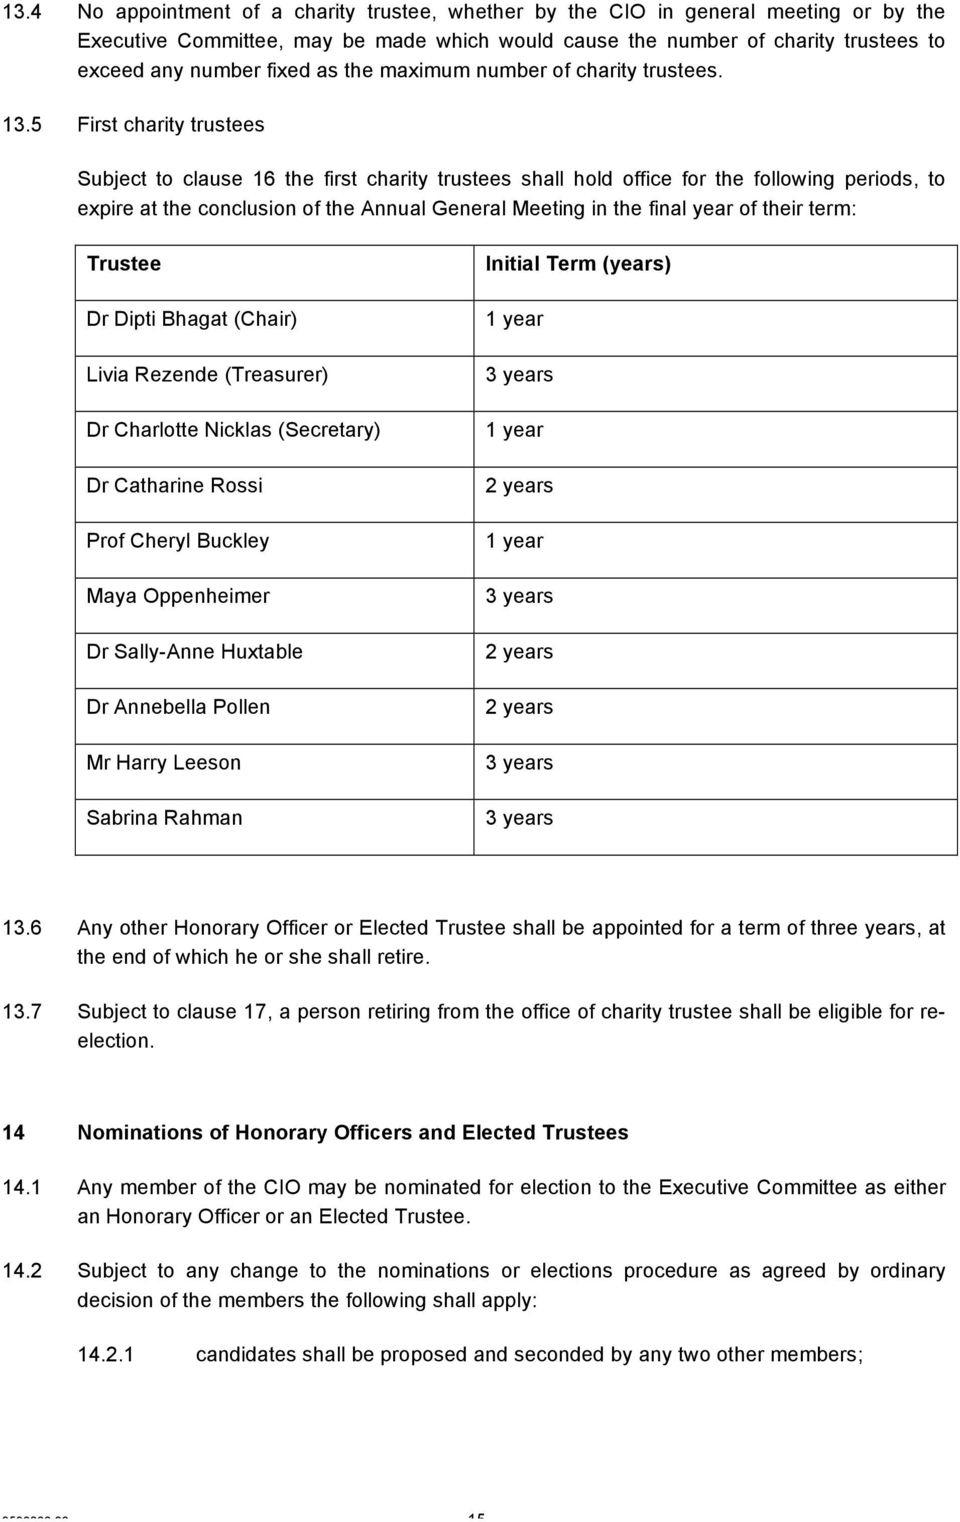 5 First charity trustees Subject to clause 16 the first charity trustees shall hold office for the following periods, to expire at the conclusion of the Annual General Meeting in the final year of